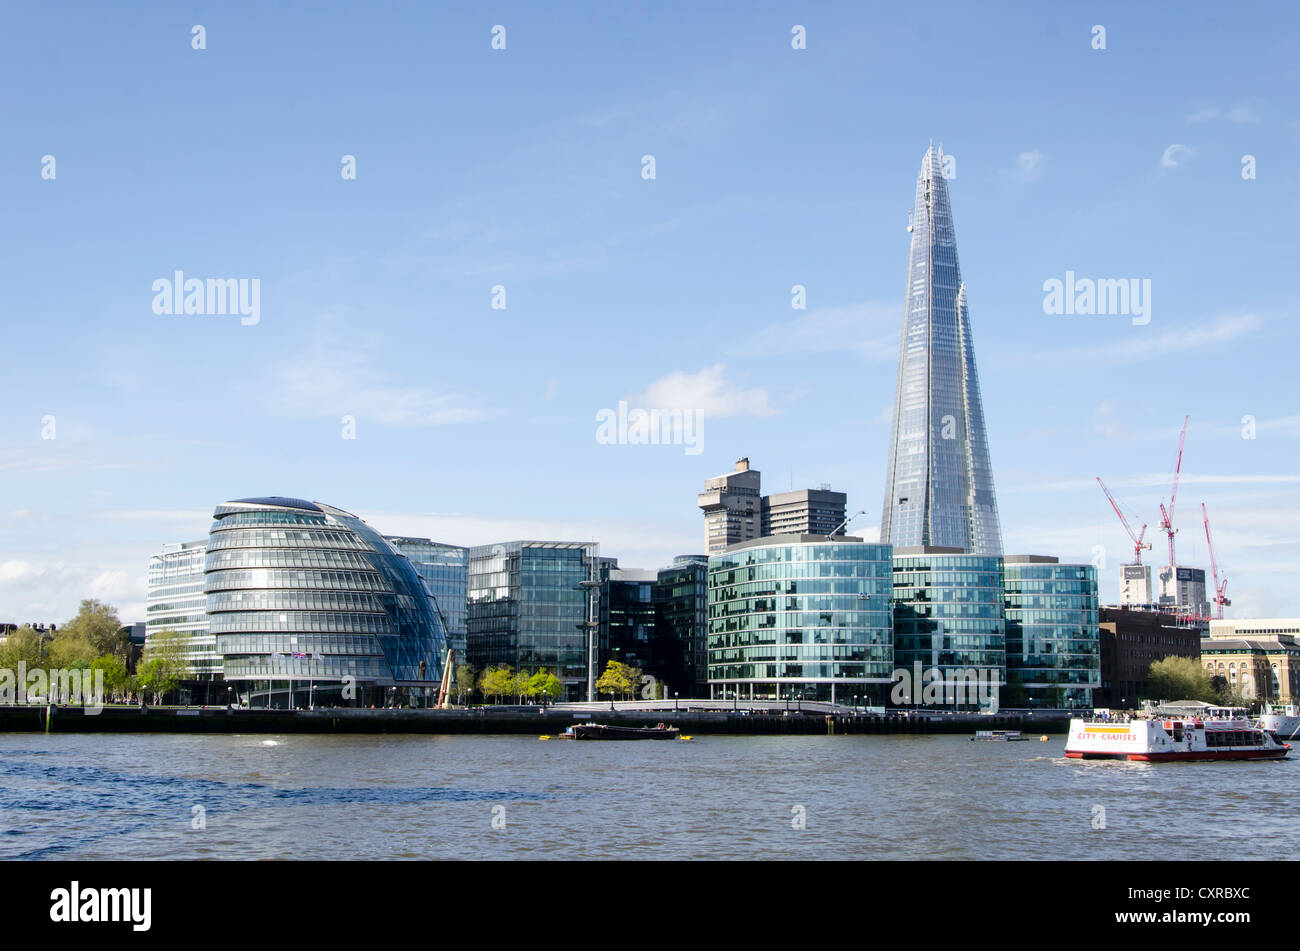 City Hall and the Shard London Bridge skyscraper by Renzo Piano, modern office building in London, Southern England, - Stock Image